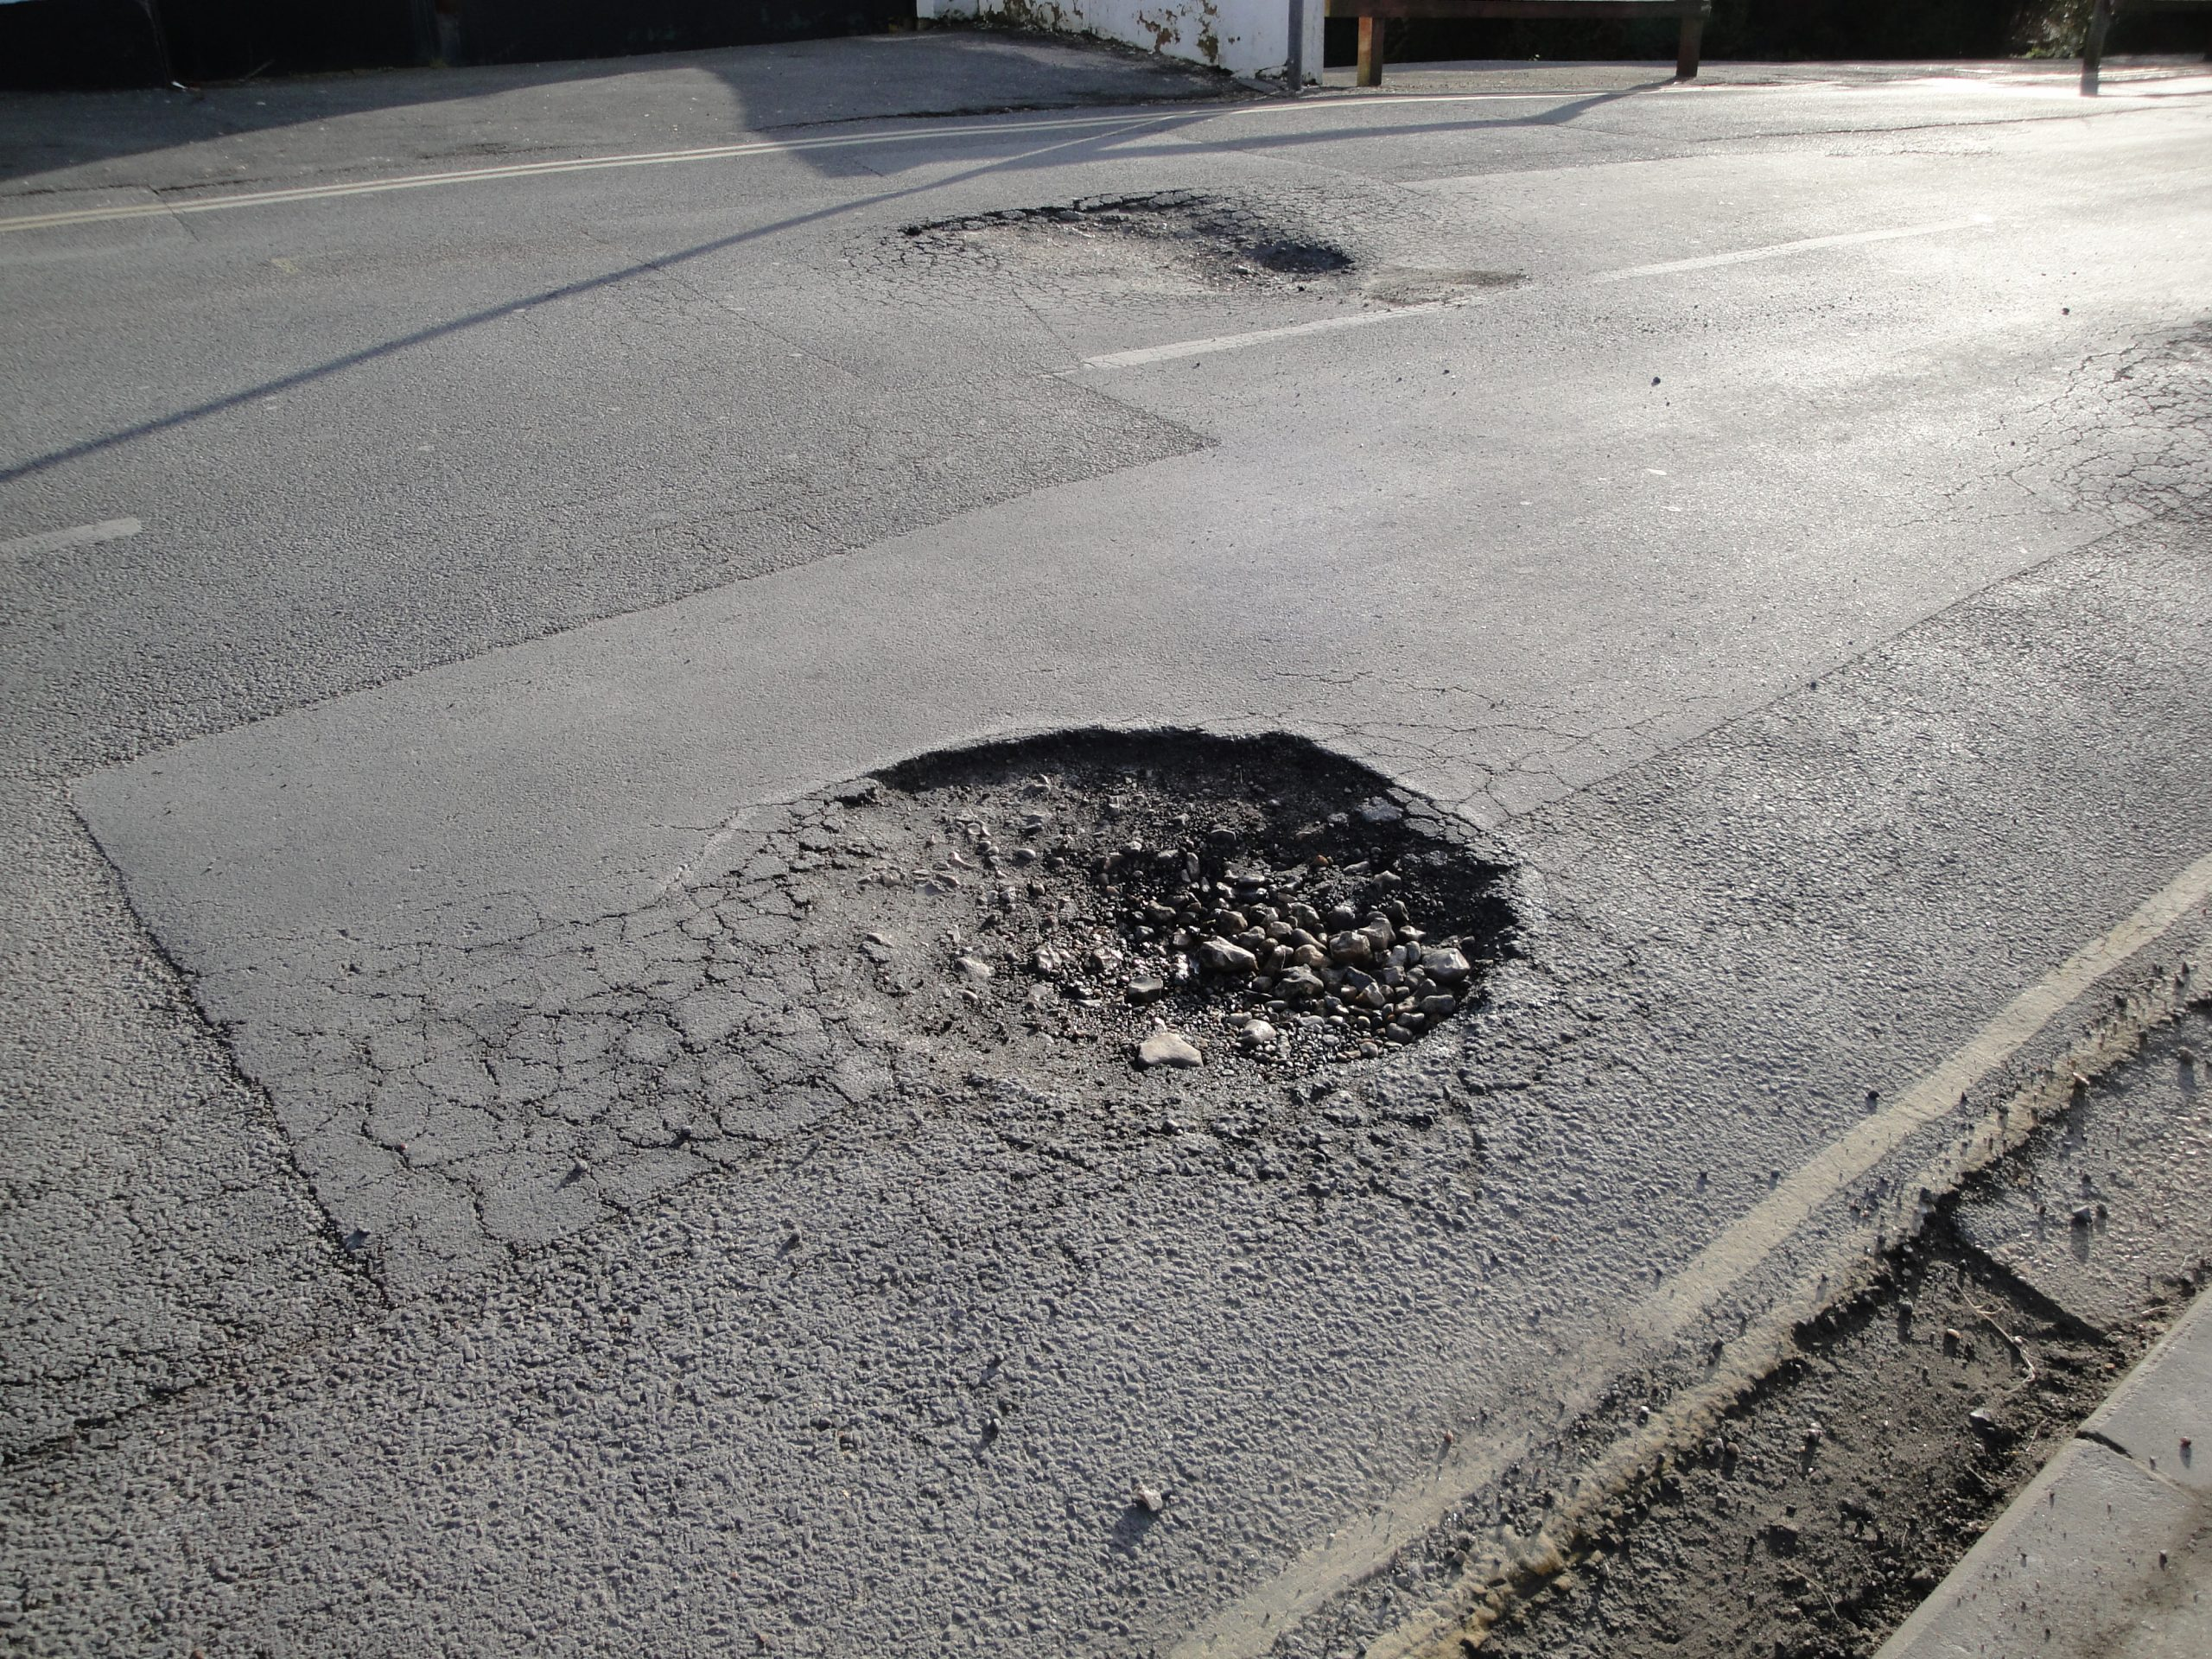 With AI, Your Car Can Detect Potholes